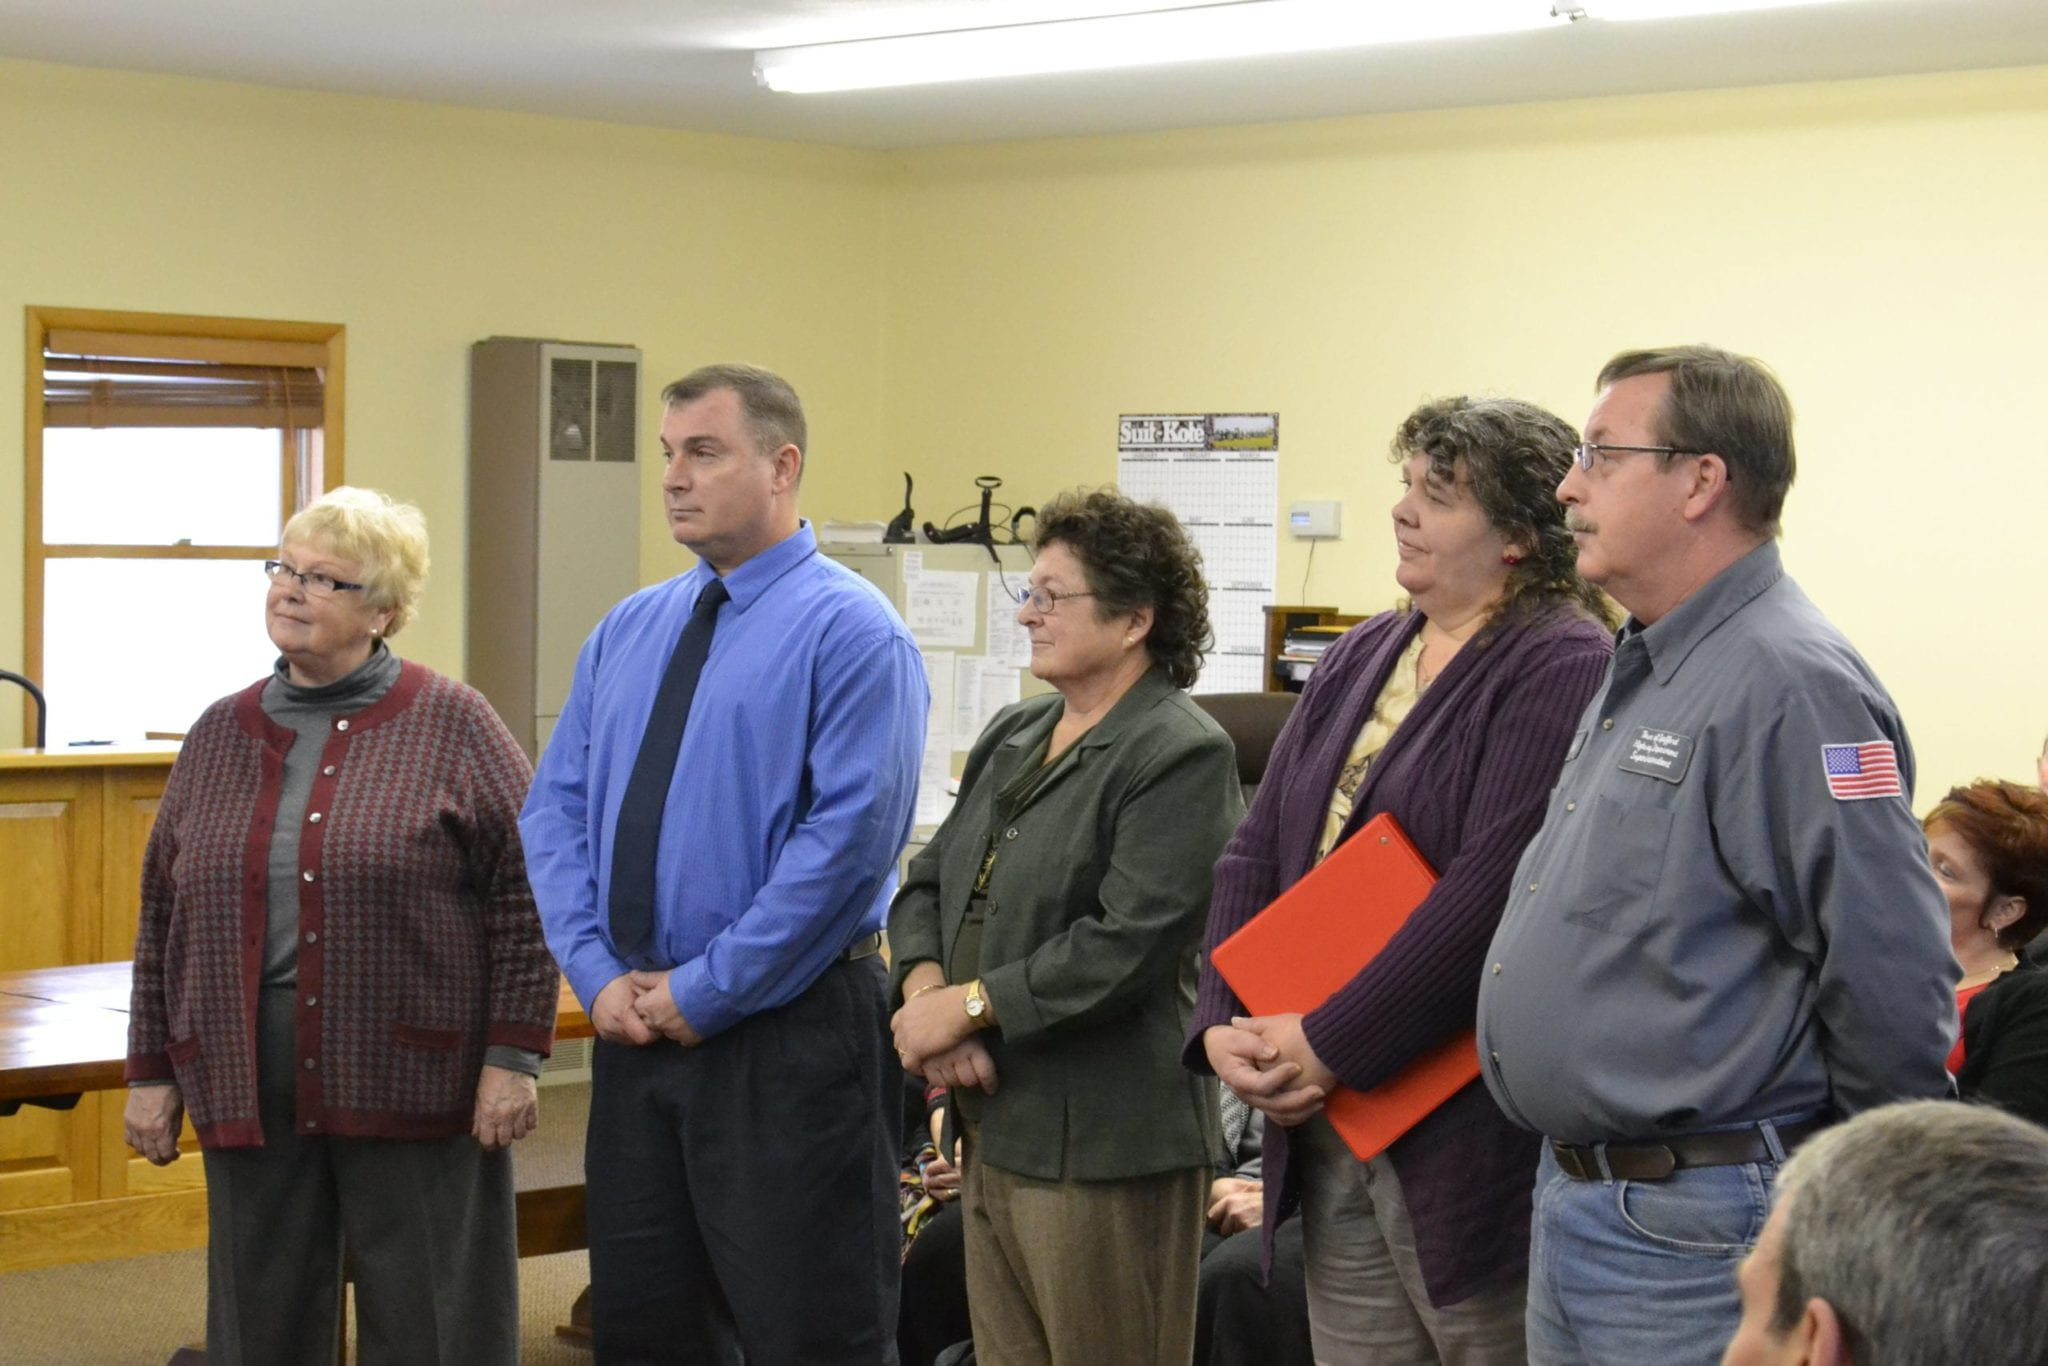 Spafford officials take oath, talk about goals for year